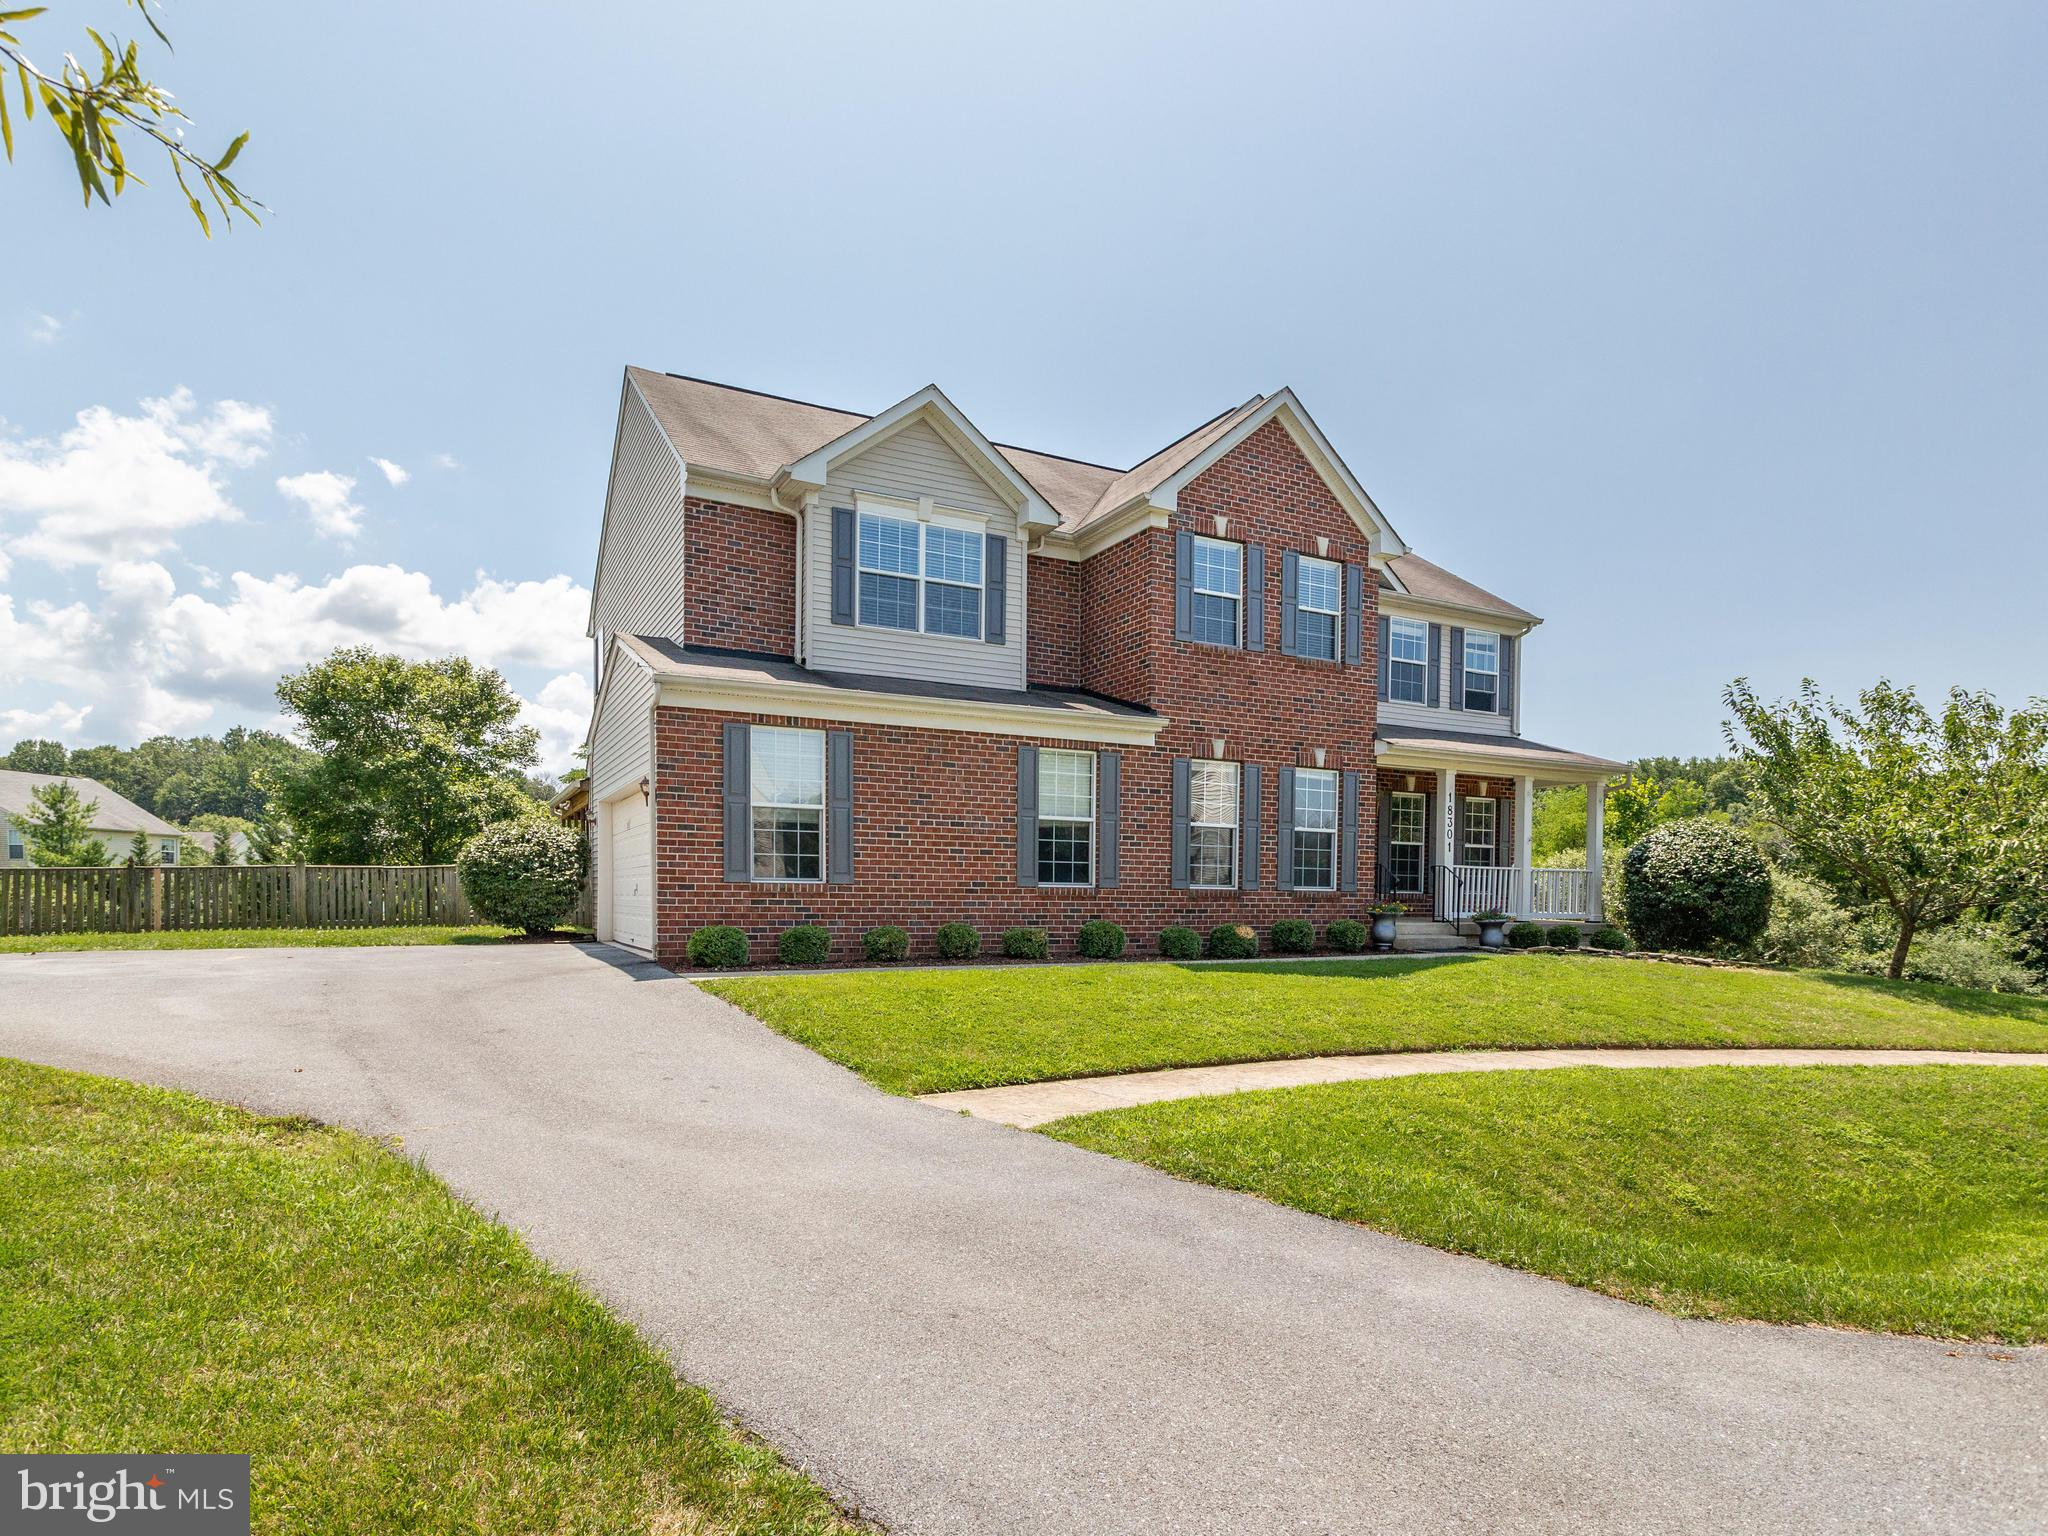 18301 BUBBLING SPRING TERRACE, BOYDS, MD 20841